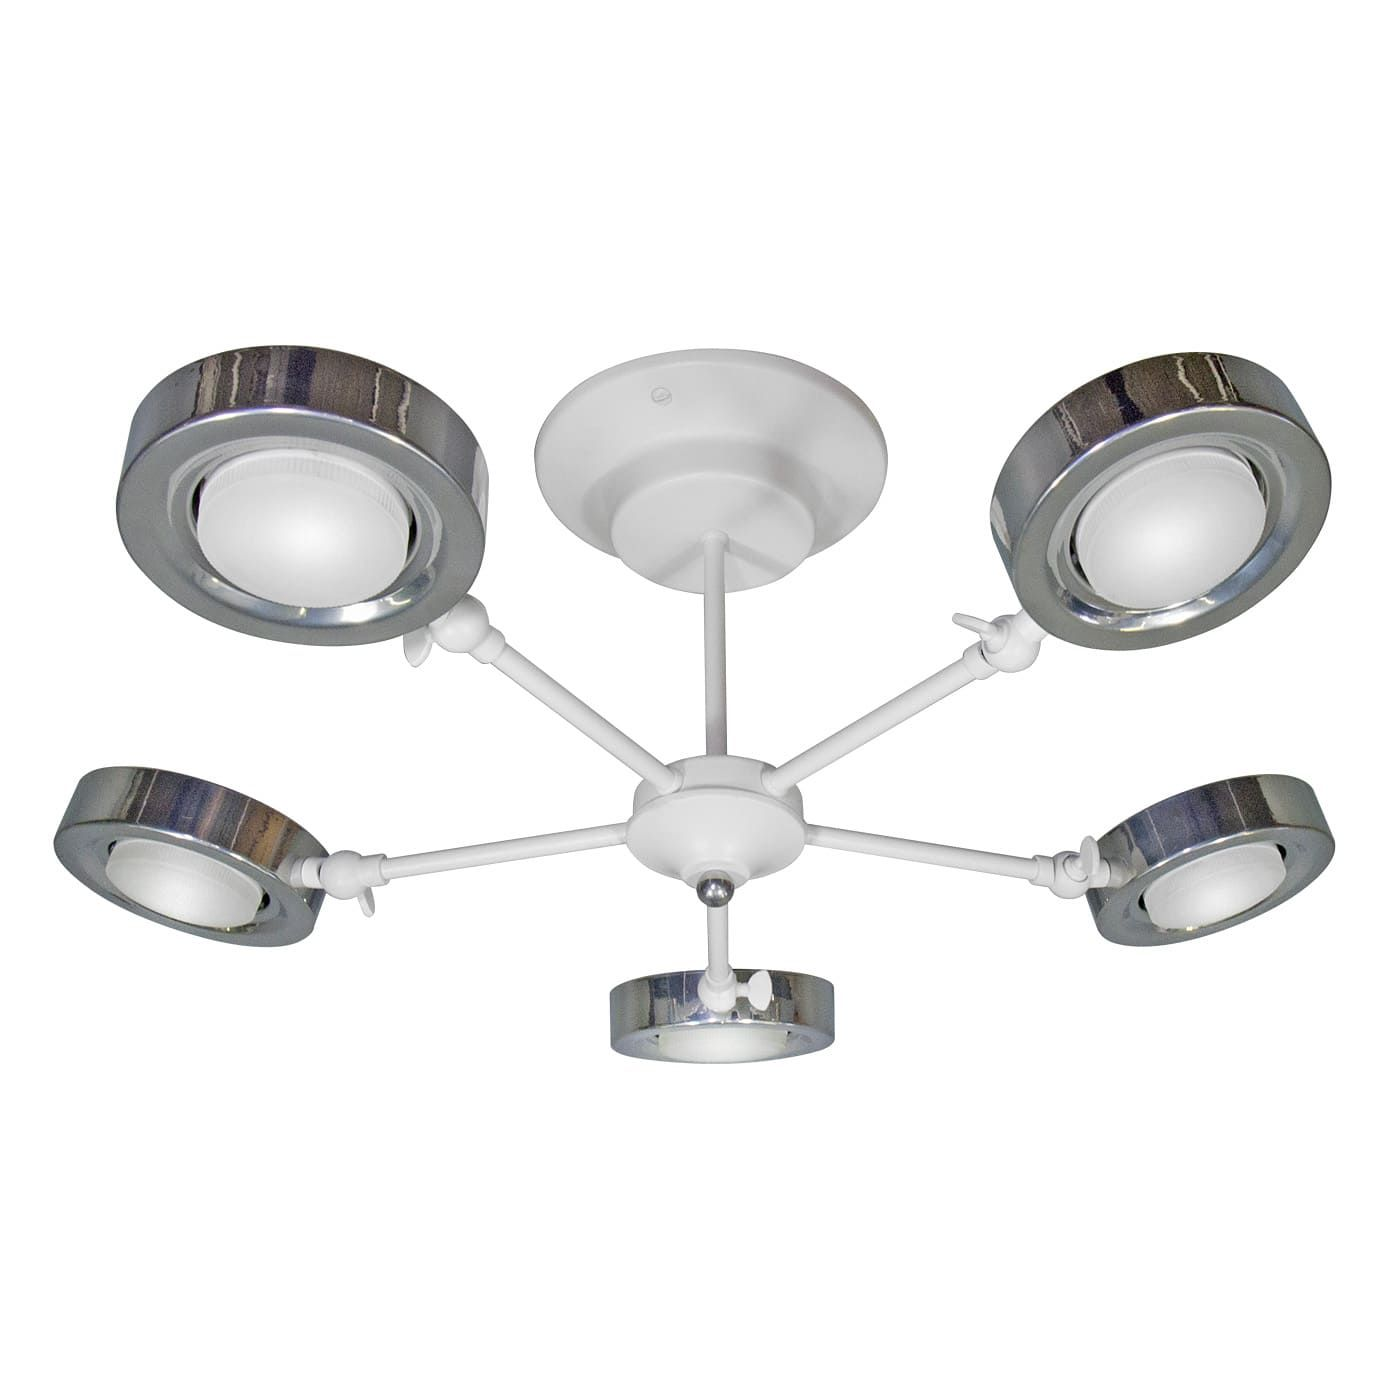 PETRASVET / Ceiling chandelier S2238-5, 5 * GX53, without LED lamps